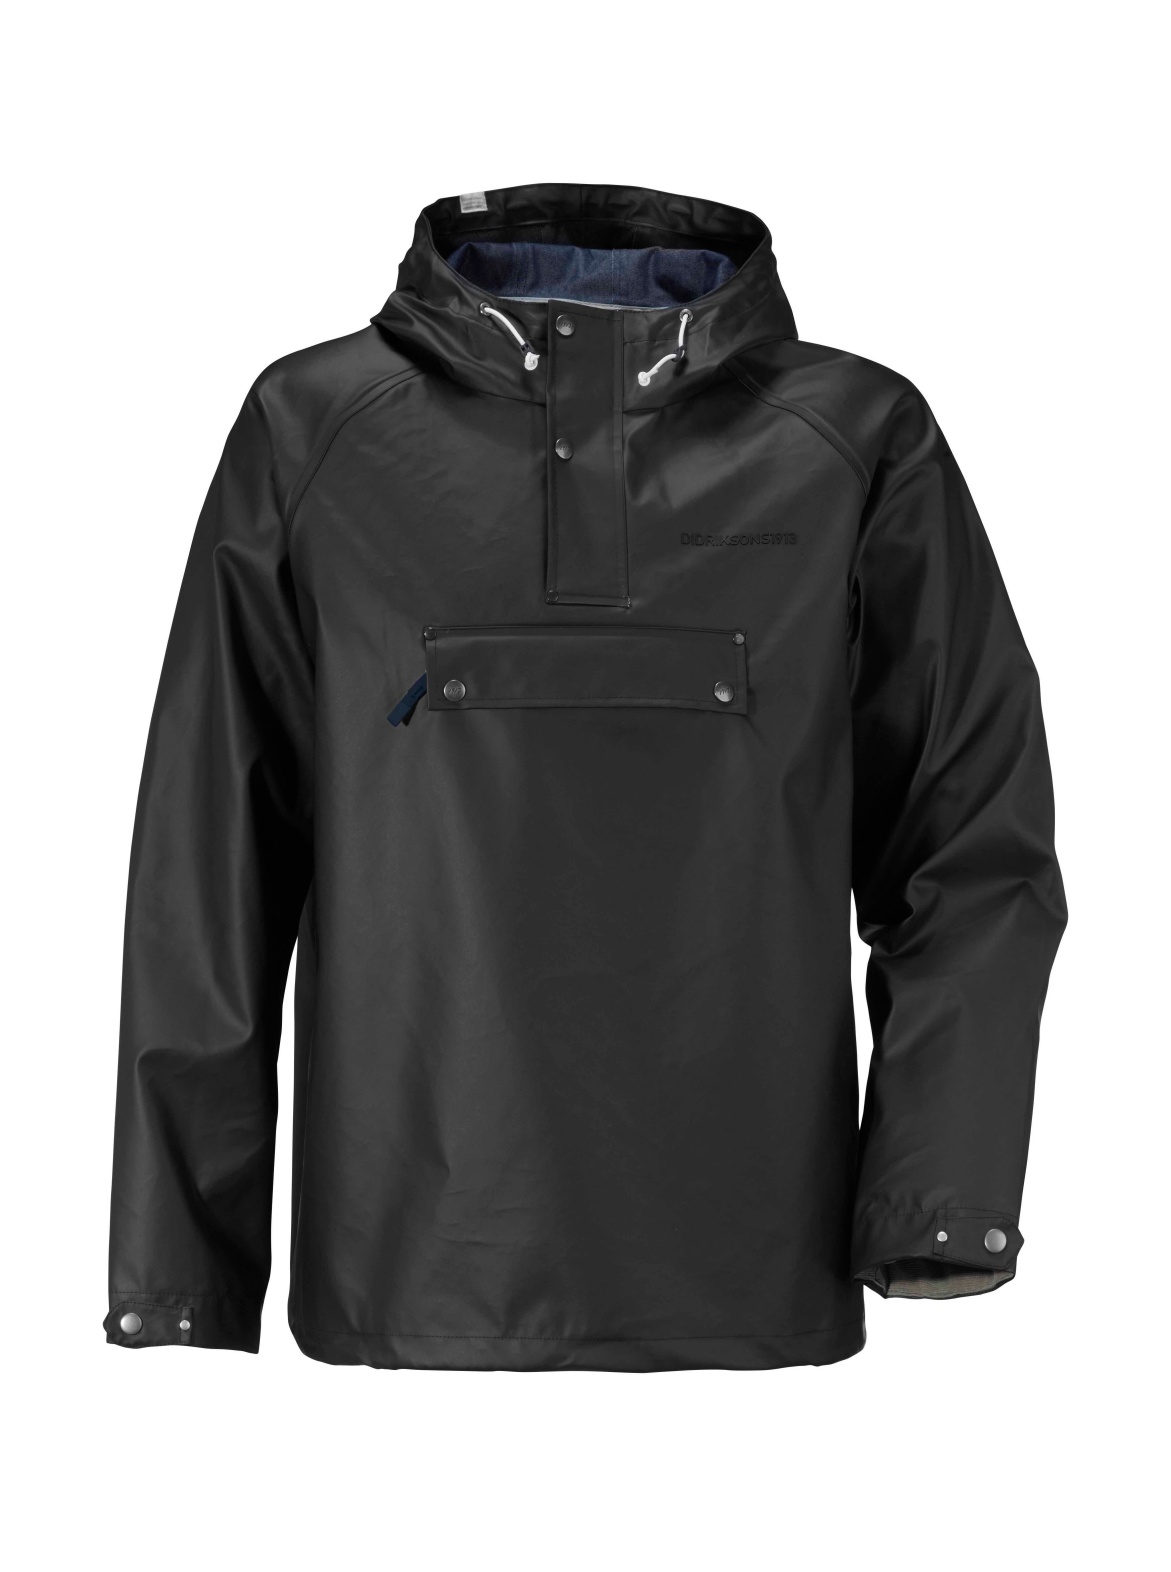 Didriksons Slaghoken Men's Jacket - Black